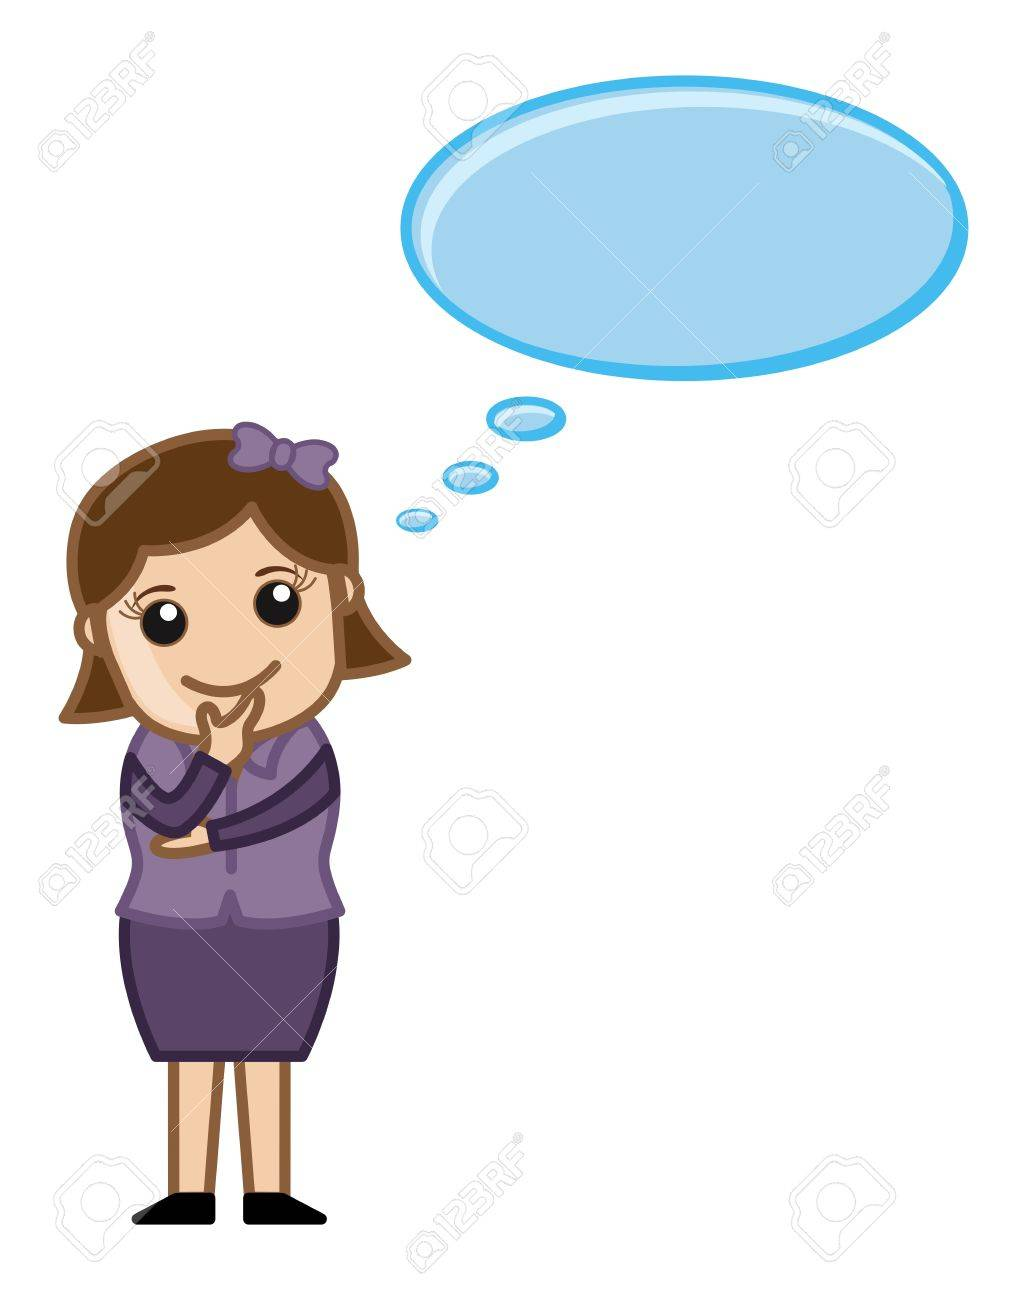 woman thinking - thought bubble - business cartoons vectors royalty